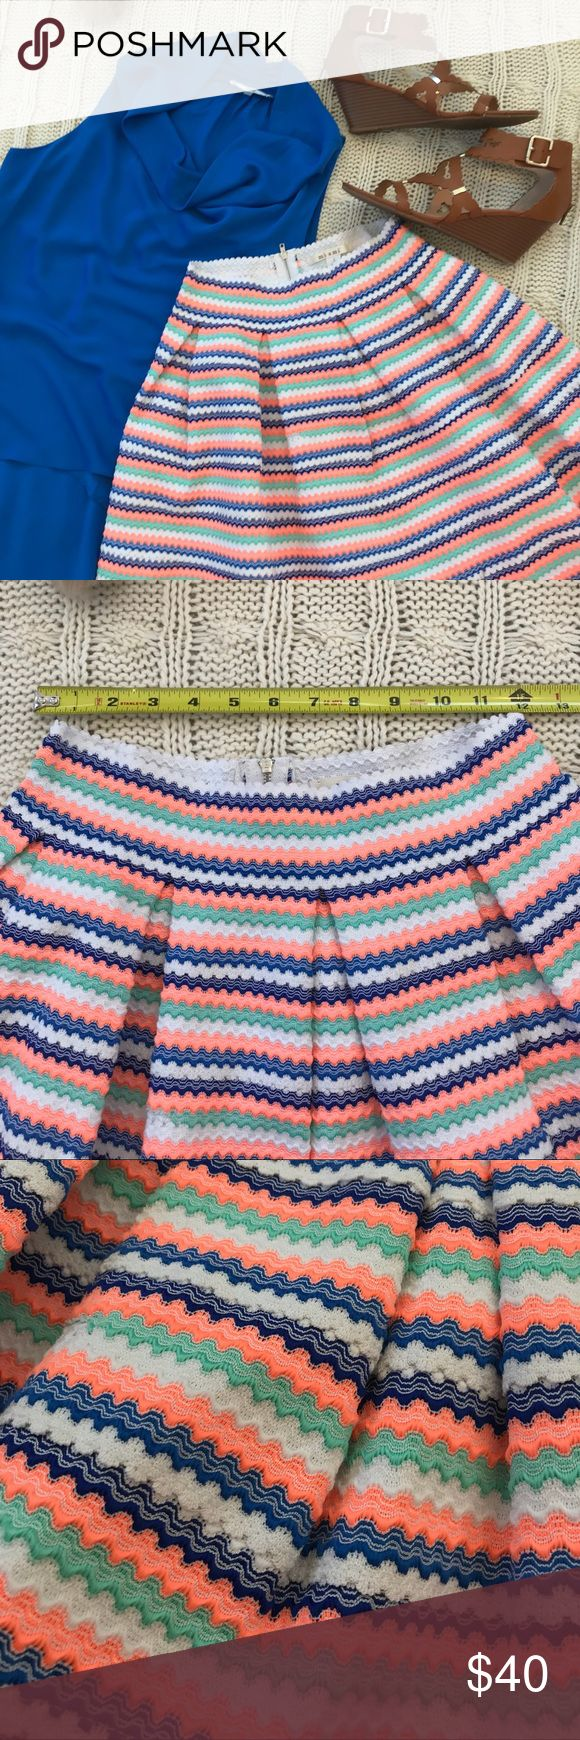 """Miami Party Skirt Blue/Coral/Green/White Sz Small Perfect for the Spring/Summer 2018 season!  These colors really pop!  The material has some good weight to it, not cheap. Scallop edging and beautiful pleats add a nice detail.  Waist has some slight stretch to it.  This listing is for SKIRT only.   Waist: 12"""", stretches to 15"""" Length: 17.5""""  One small purple spot on back, not noticeable when wearing (see pictures). Smoke free and pet free home. Always open to offers. 🍍🍍😁🍍🍍 miami Skirts…"""